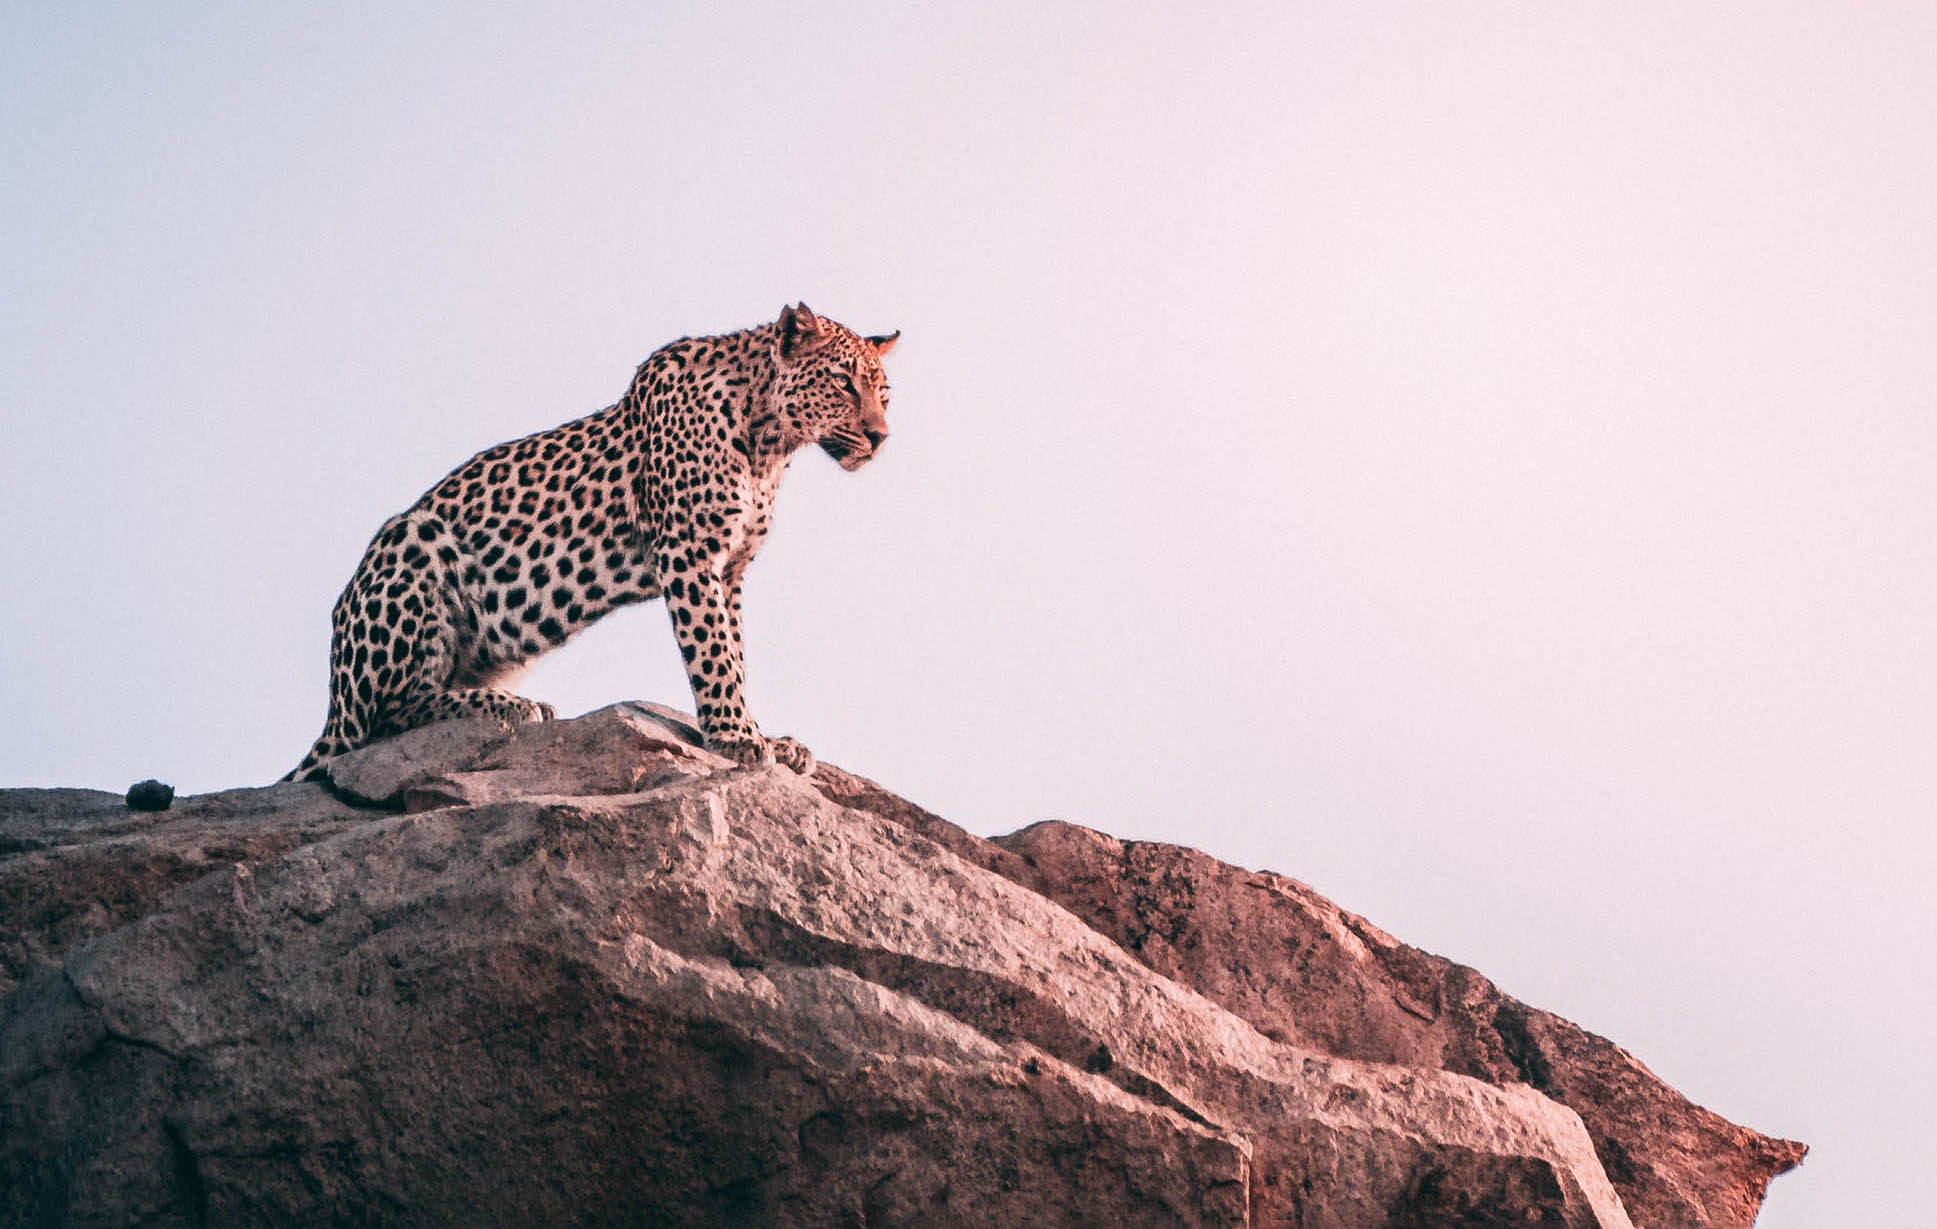 distance animal copy basics photography Photographing animals in the wild